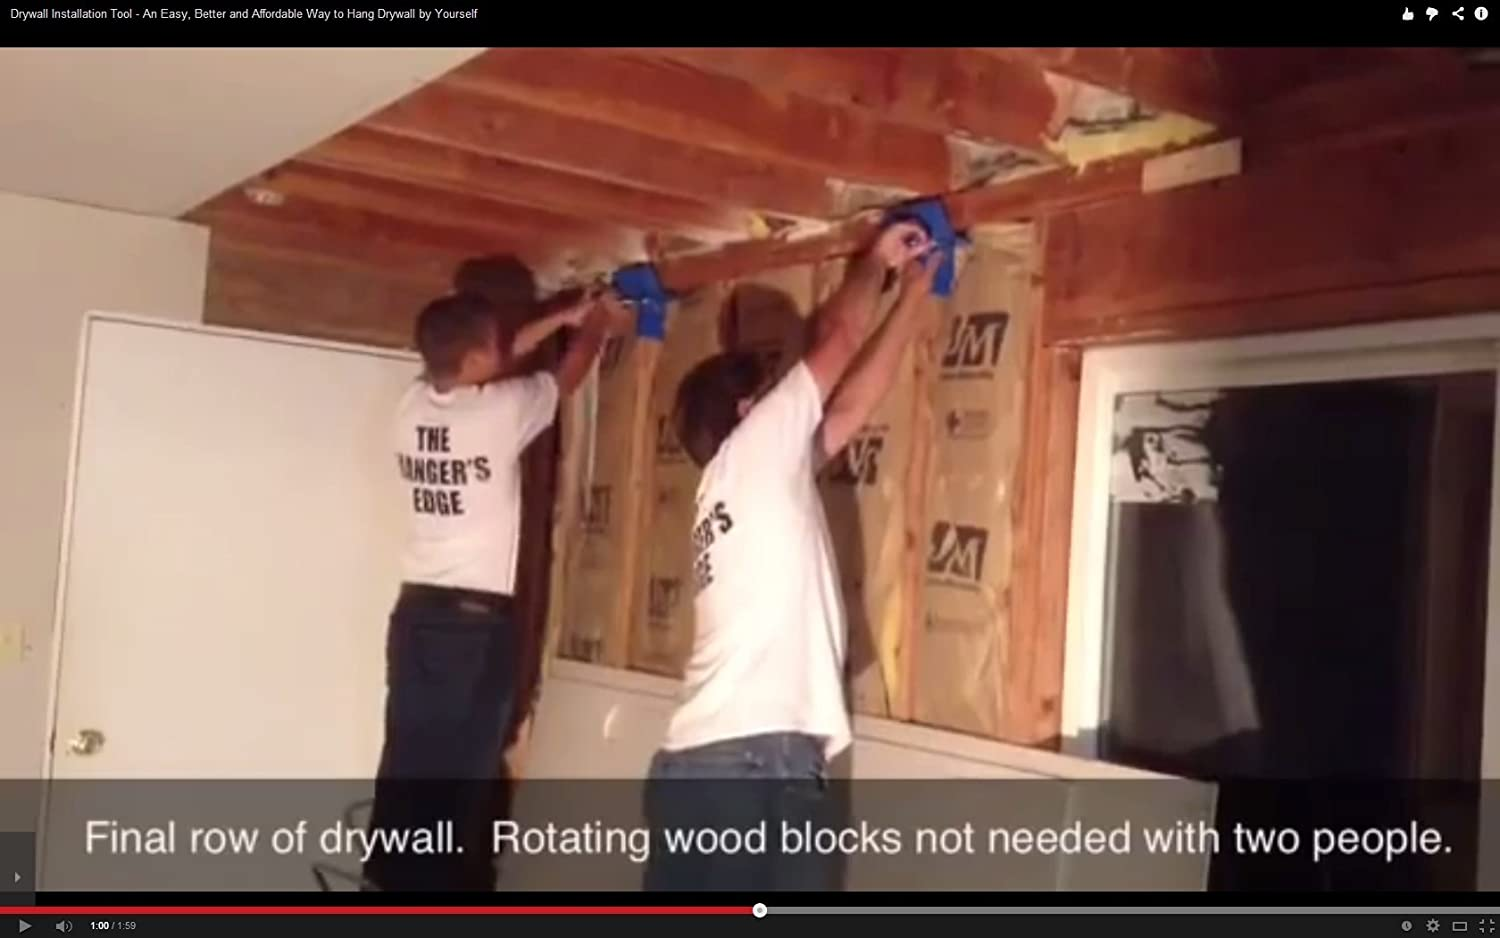 How to hang drywall on walls - How To Hang Drywall On Walls 12